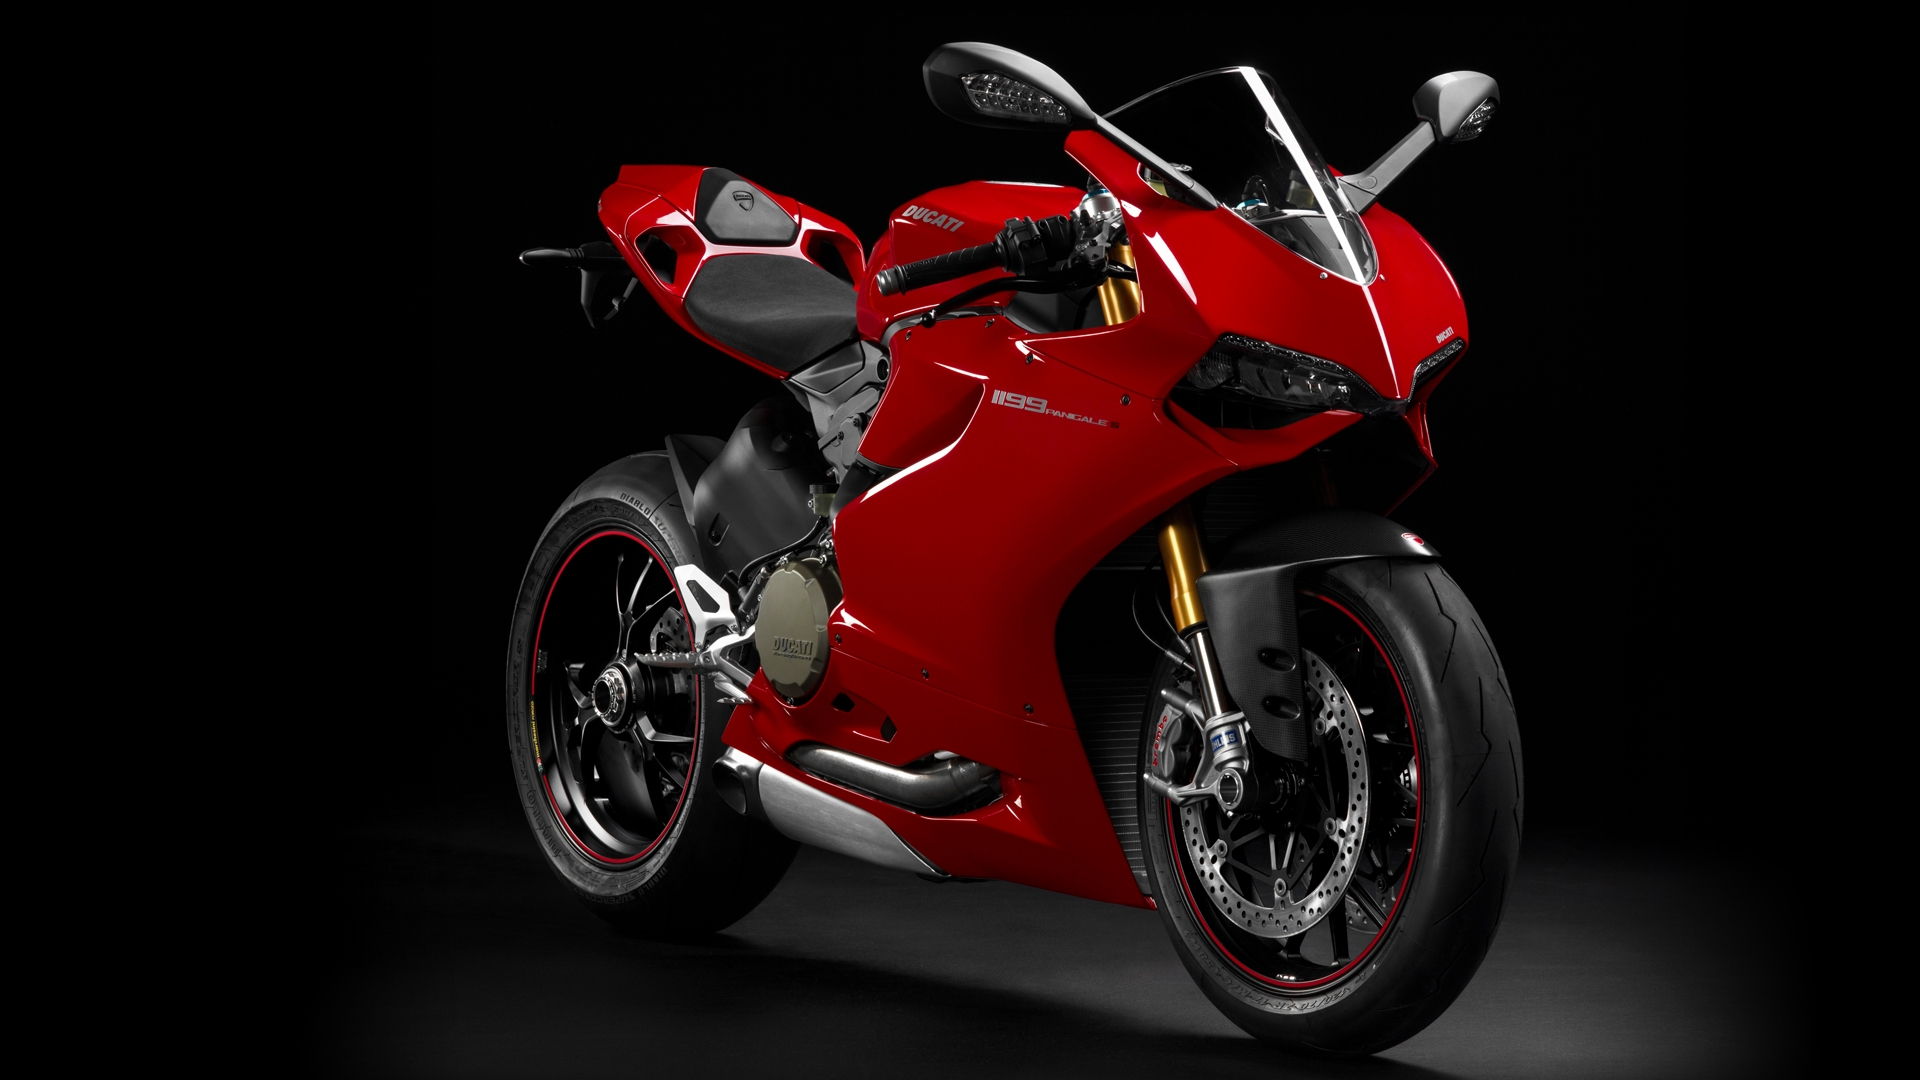 Ducati Reveals 1199 Panigale Superbike in Naked Photo